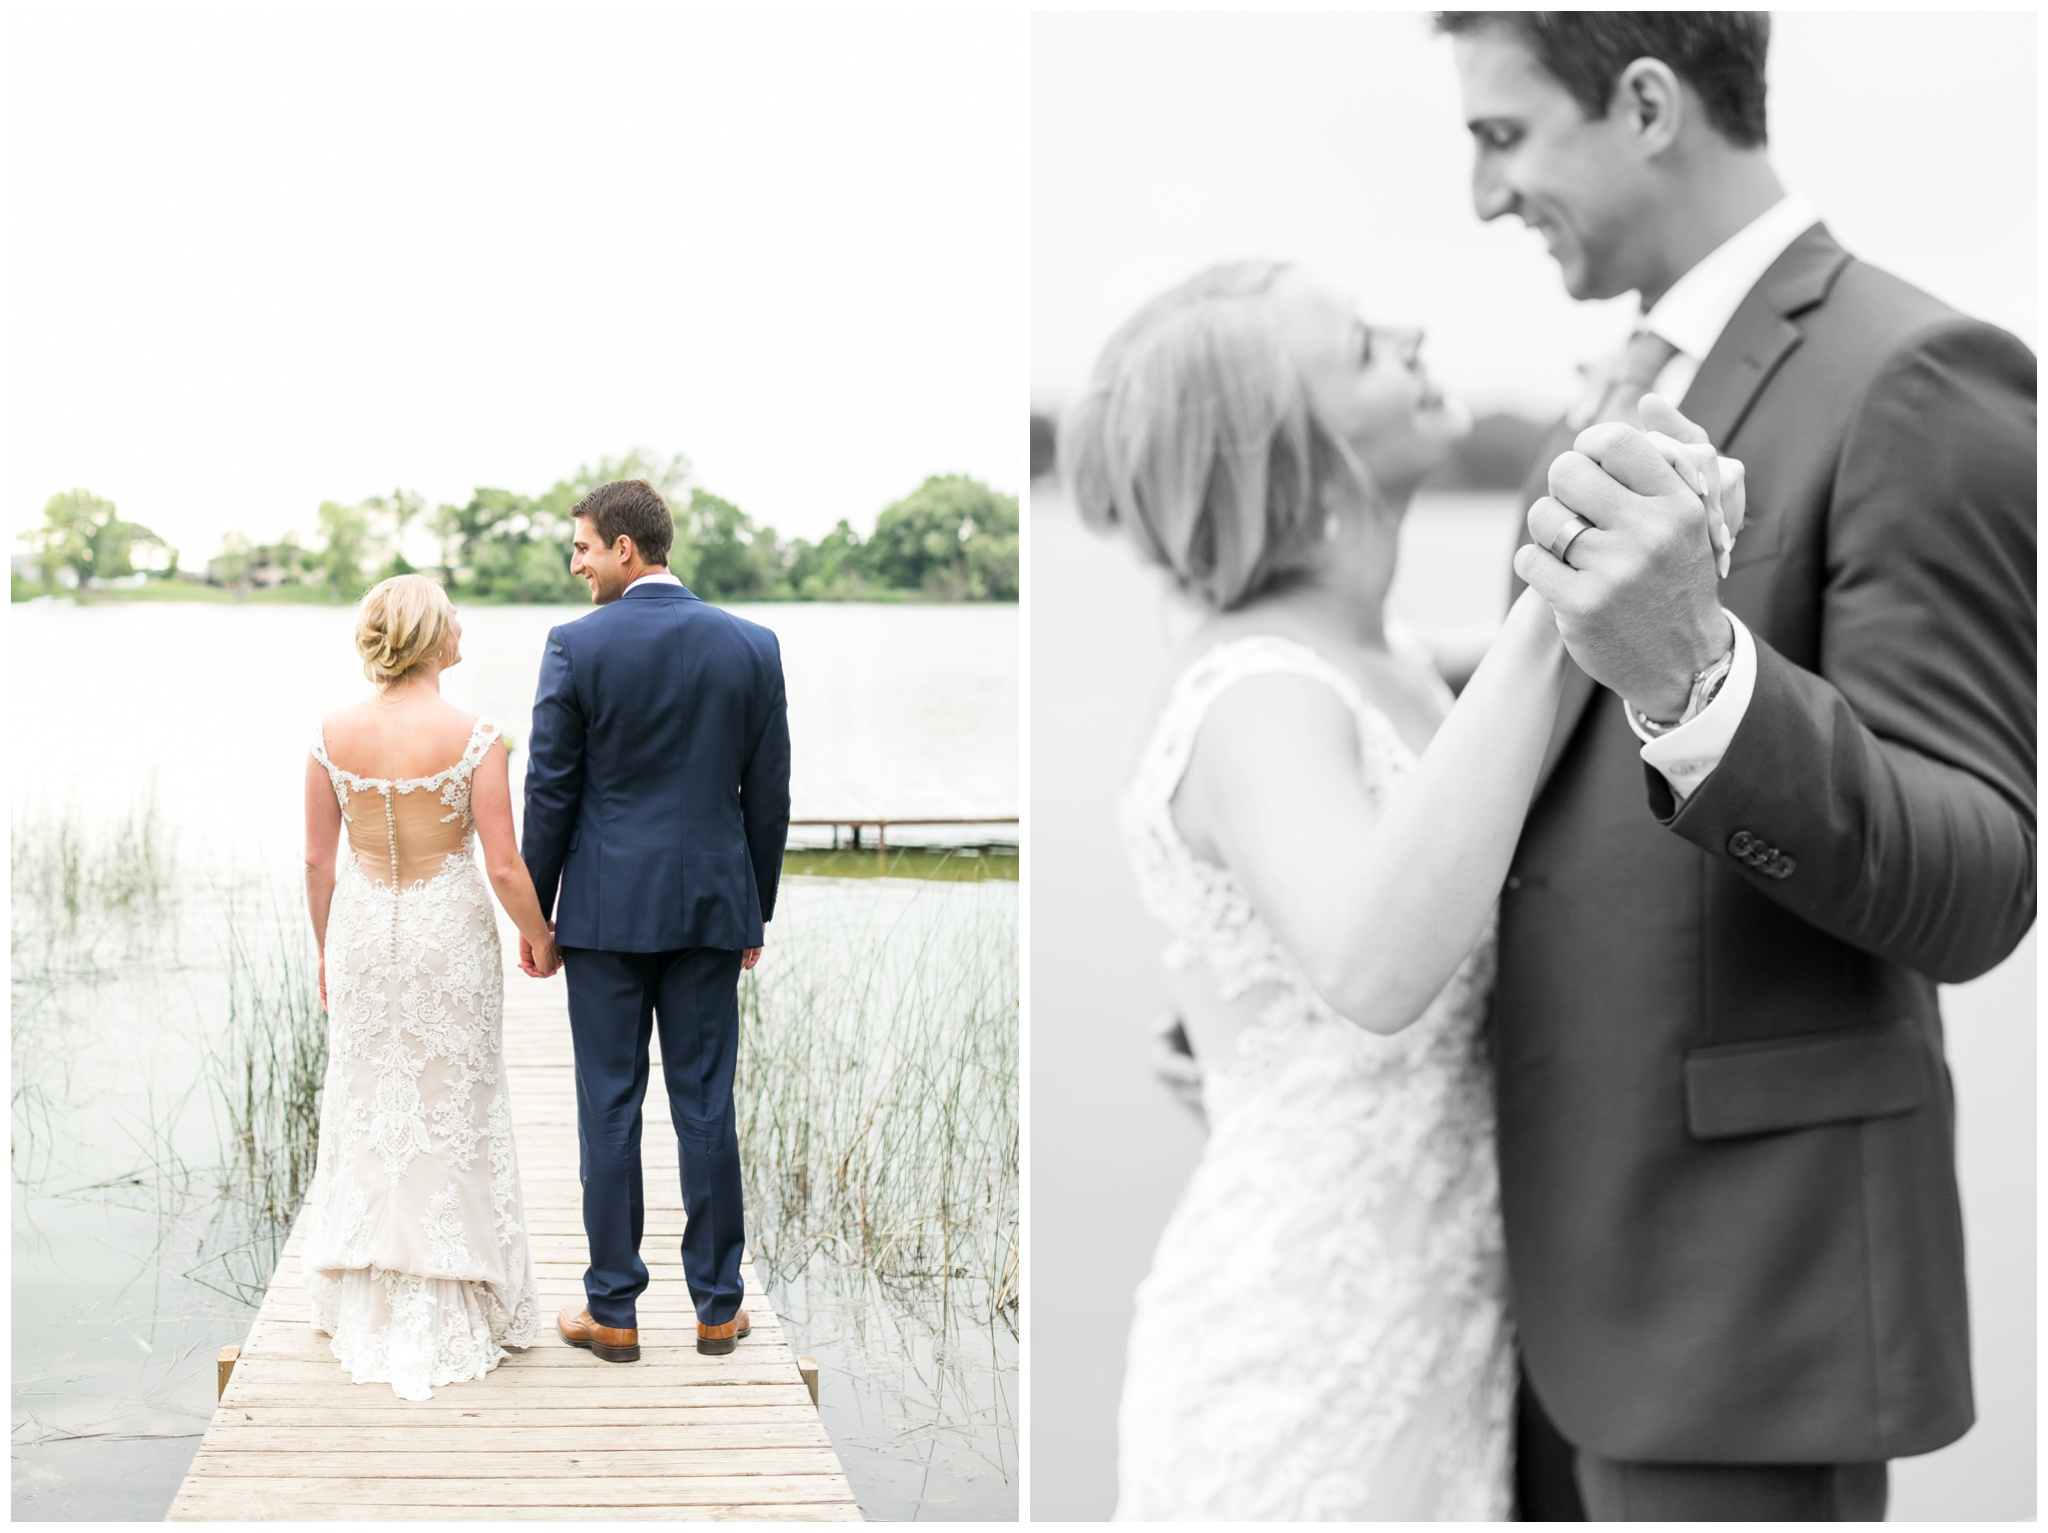 private_estate_wedding_stoughton_wisconsin_wedding_caynay_photo_3884.jpg